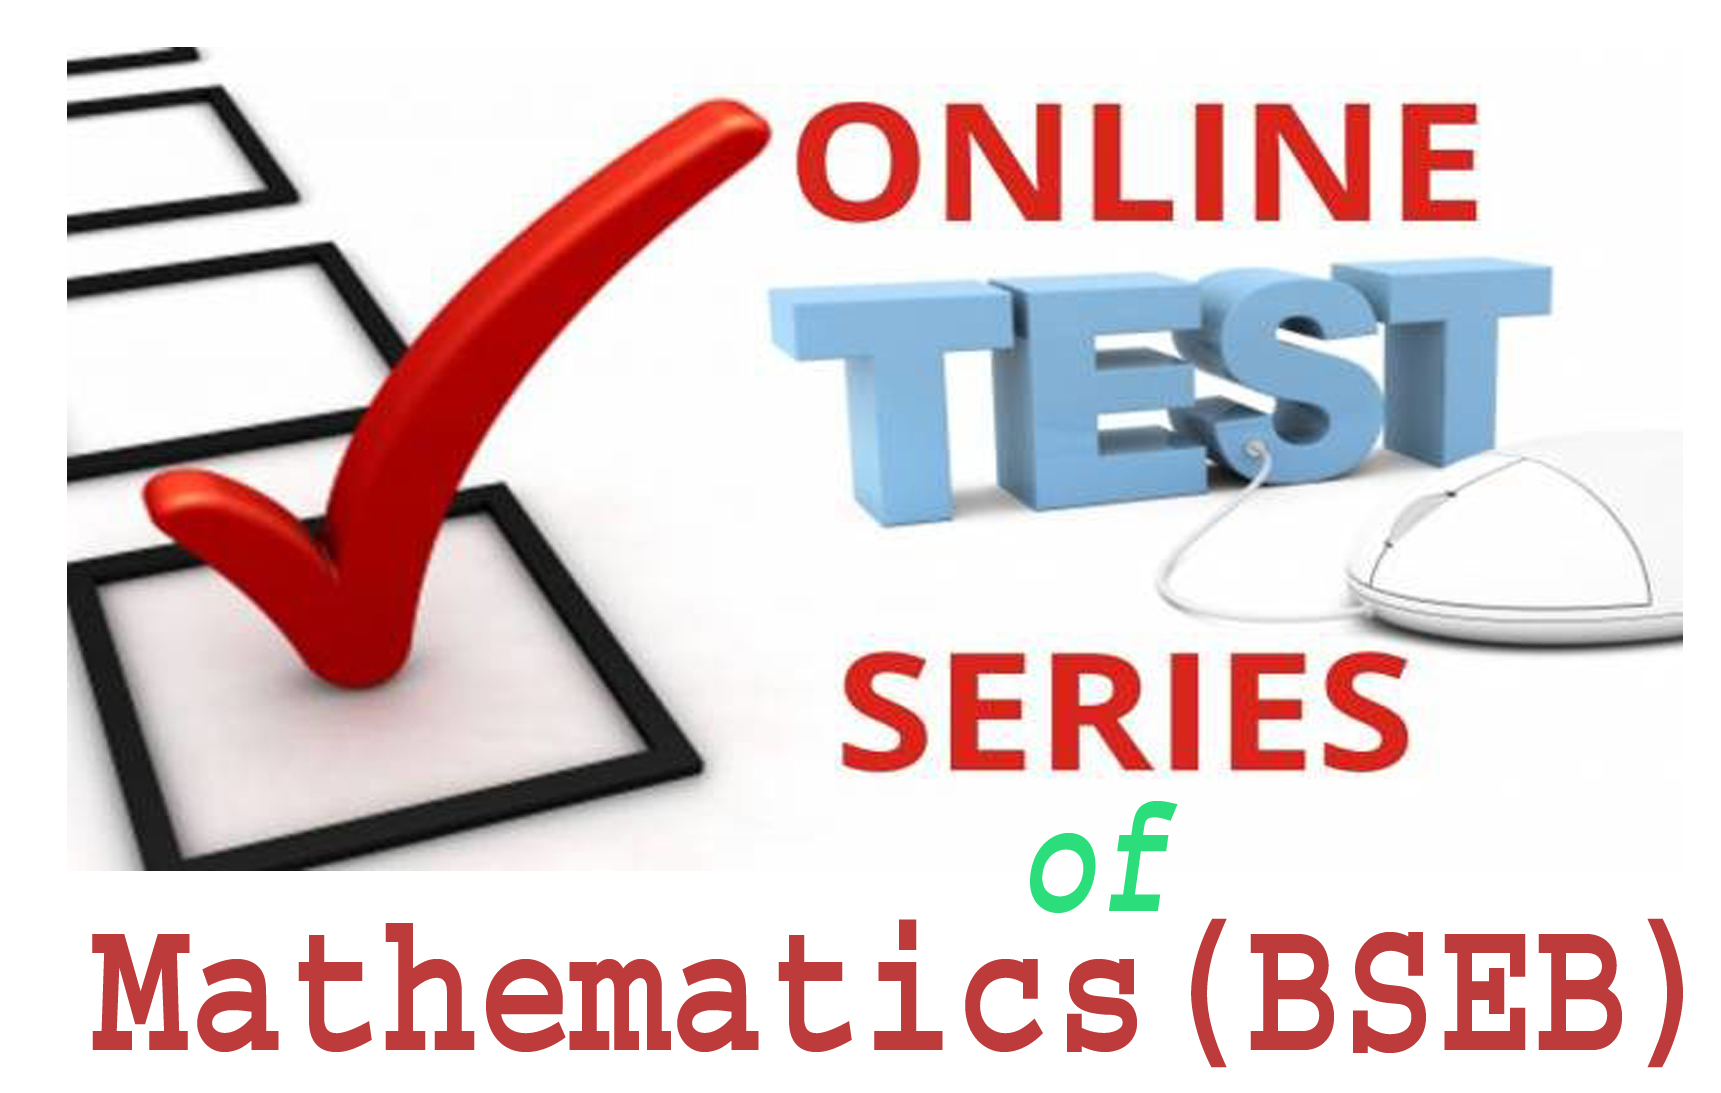 Mathematics (12th) Test Series -1